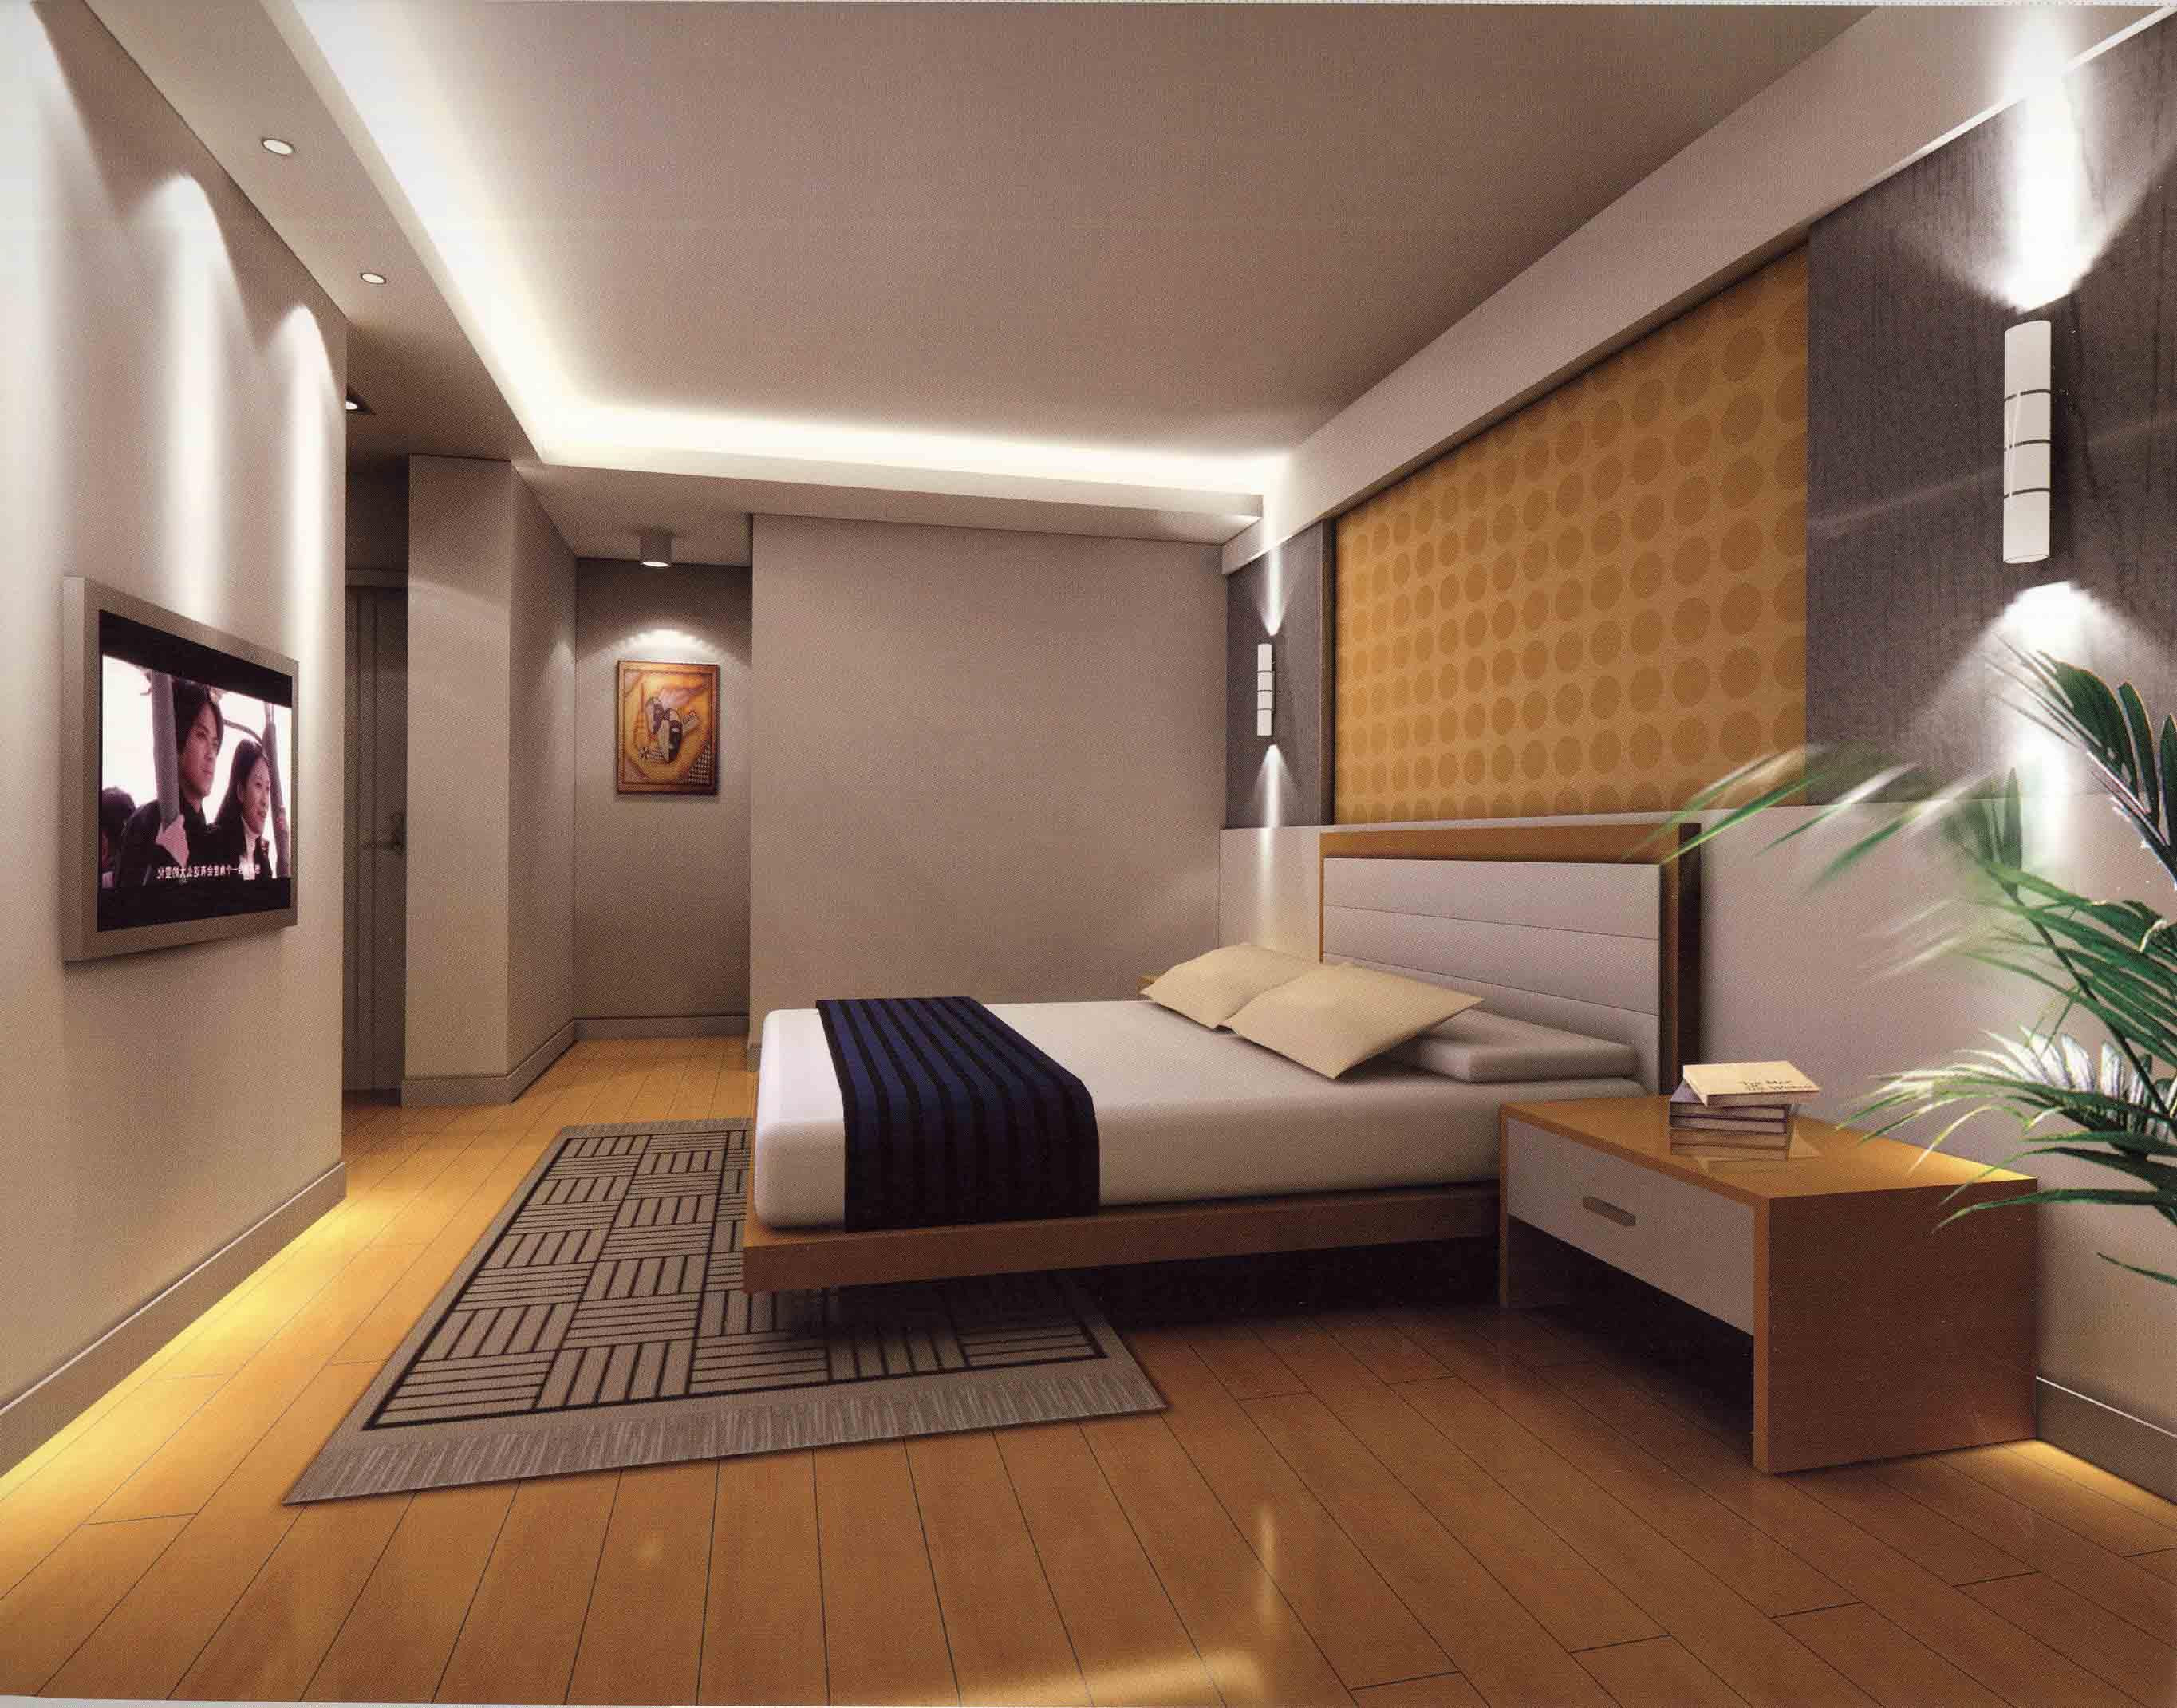 Best ideas about Cool Bedroom Ideas . Save or Pin 25 Cool Bedroom Designs Collection Now.